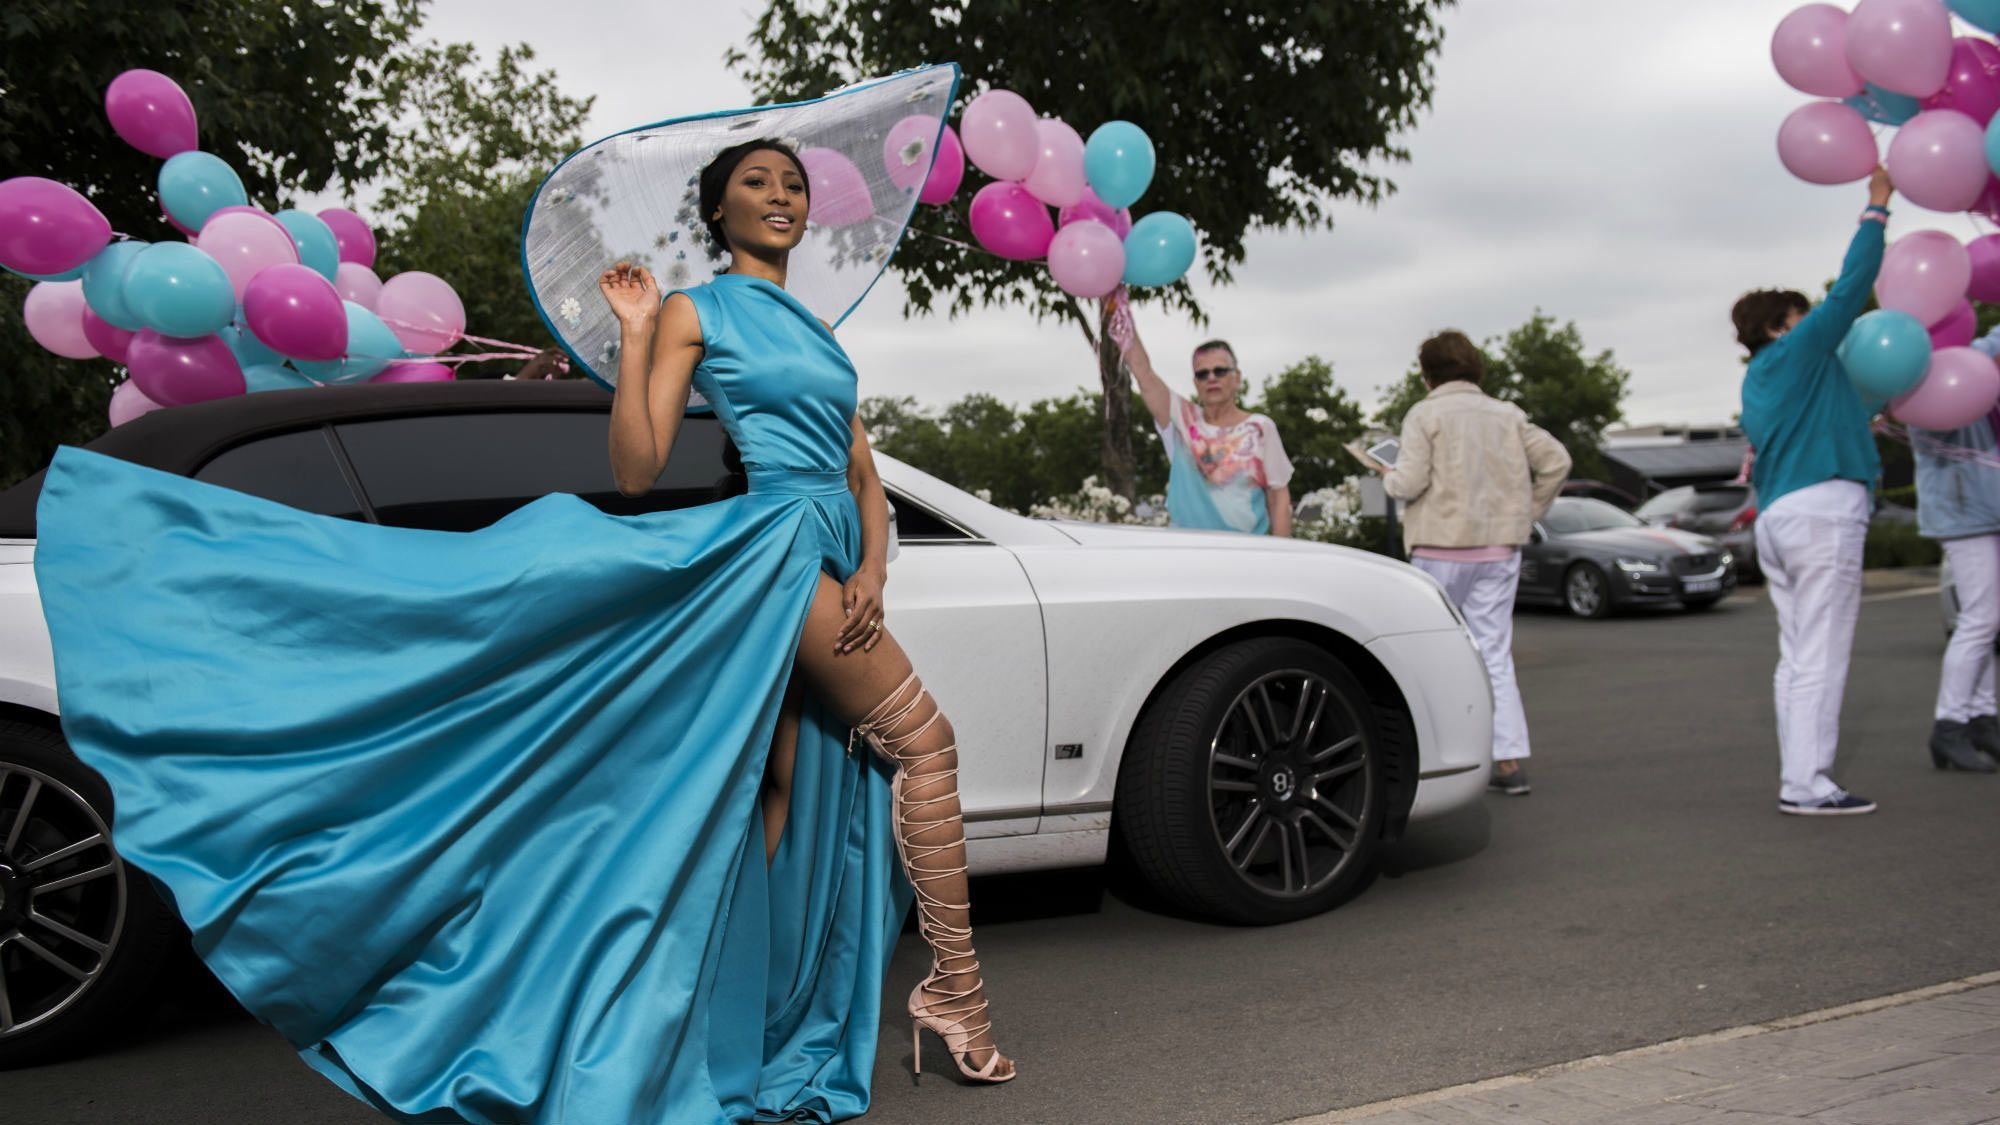 Woman with blue dress standing in front of a car